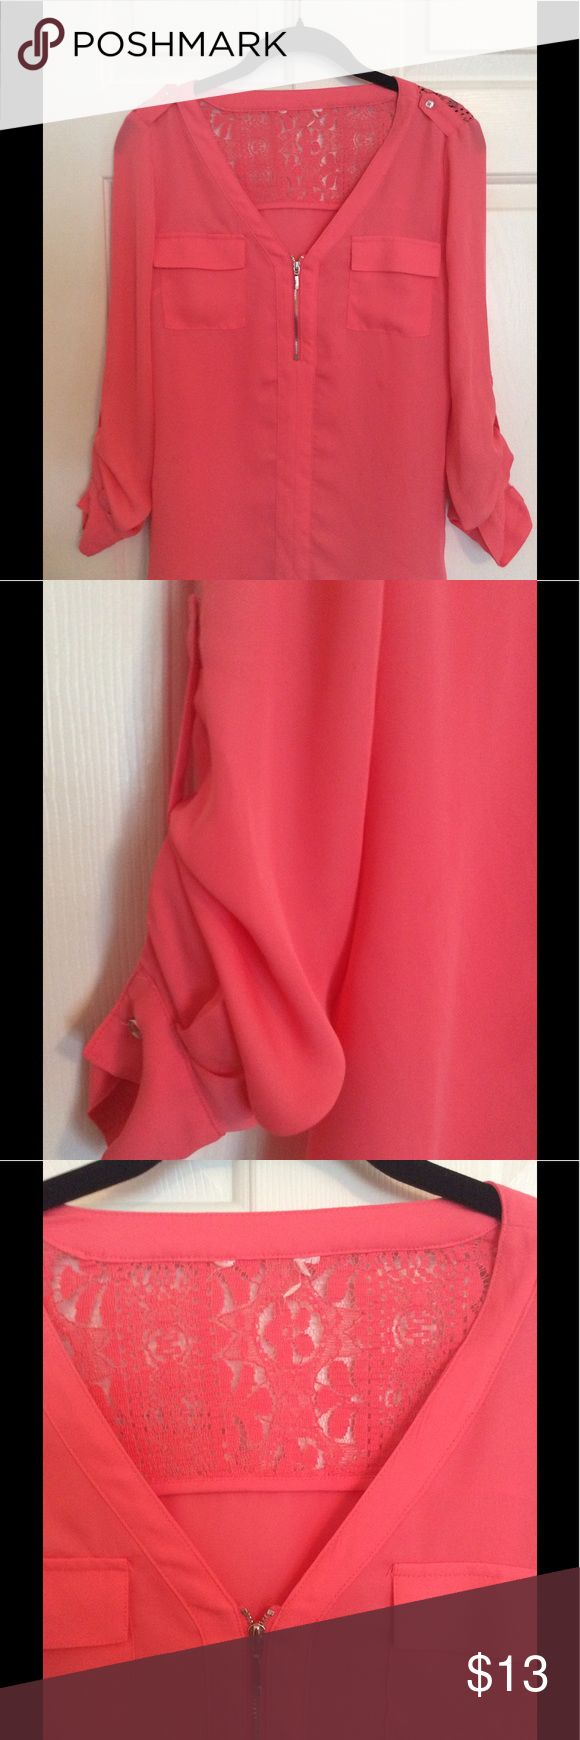 Candies Coral Blouse Candies Coral Blouse Candie's Tops Blouses